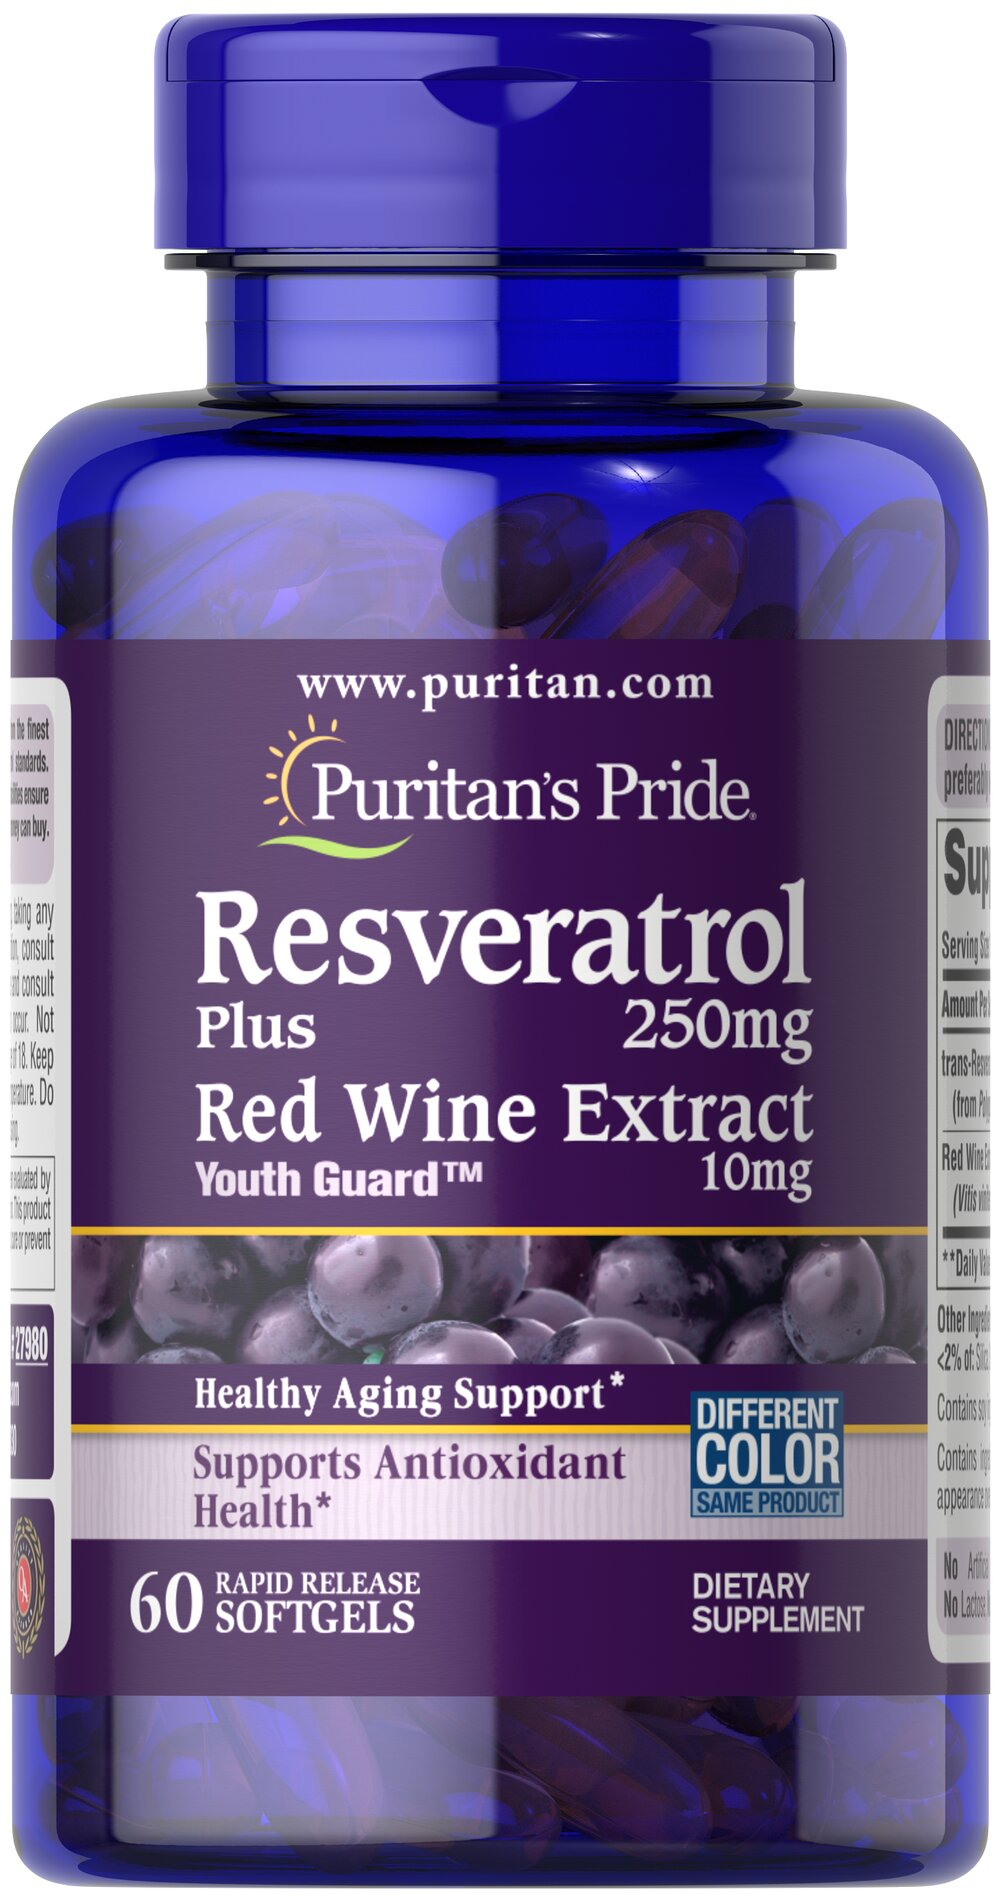 Resveratrol 250 mg <p>Resveratrol is the beneficial nutrient found in red wine</p><p>You'll get more Resveratrol in one of our capsules than you would from an entire bottle of red wine!</p><p>Maximum strength capsules are formulated for rapid  release into your system</p><p>Provides powerful antioxidant support**</p><p>Helps fight against cell-damaging free radicals**</p> 60 Softgels 250 mg $48.99